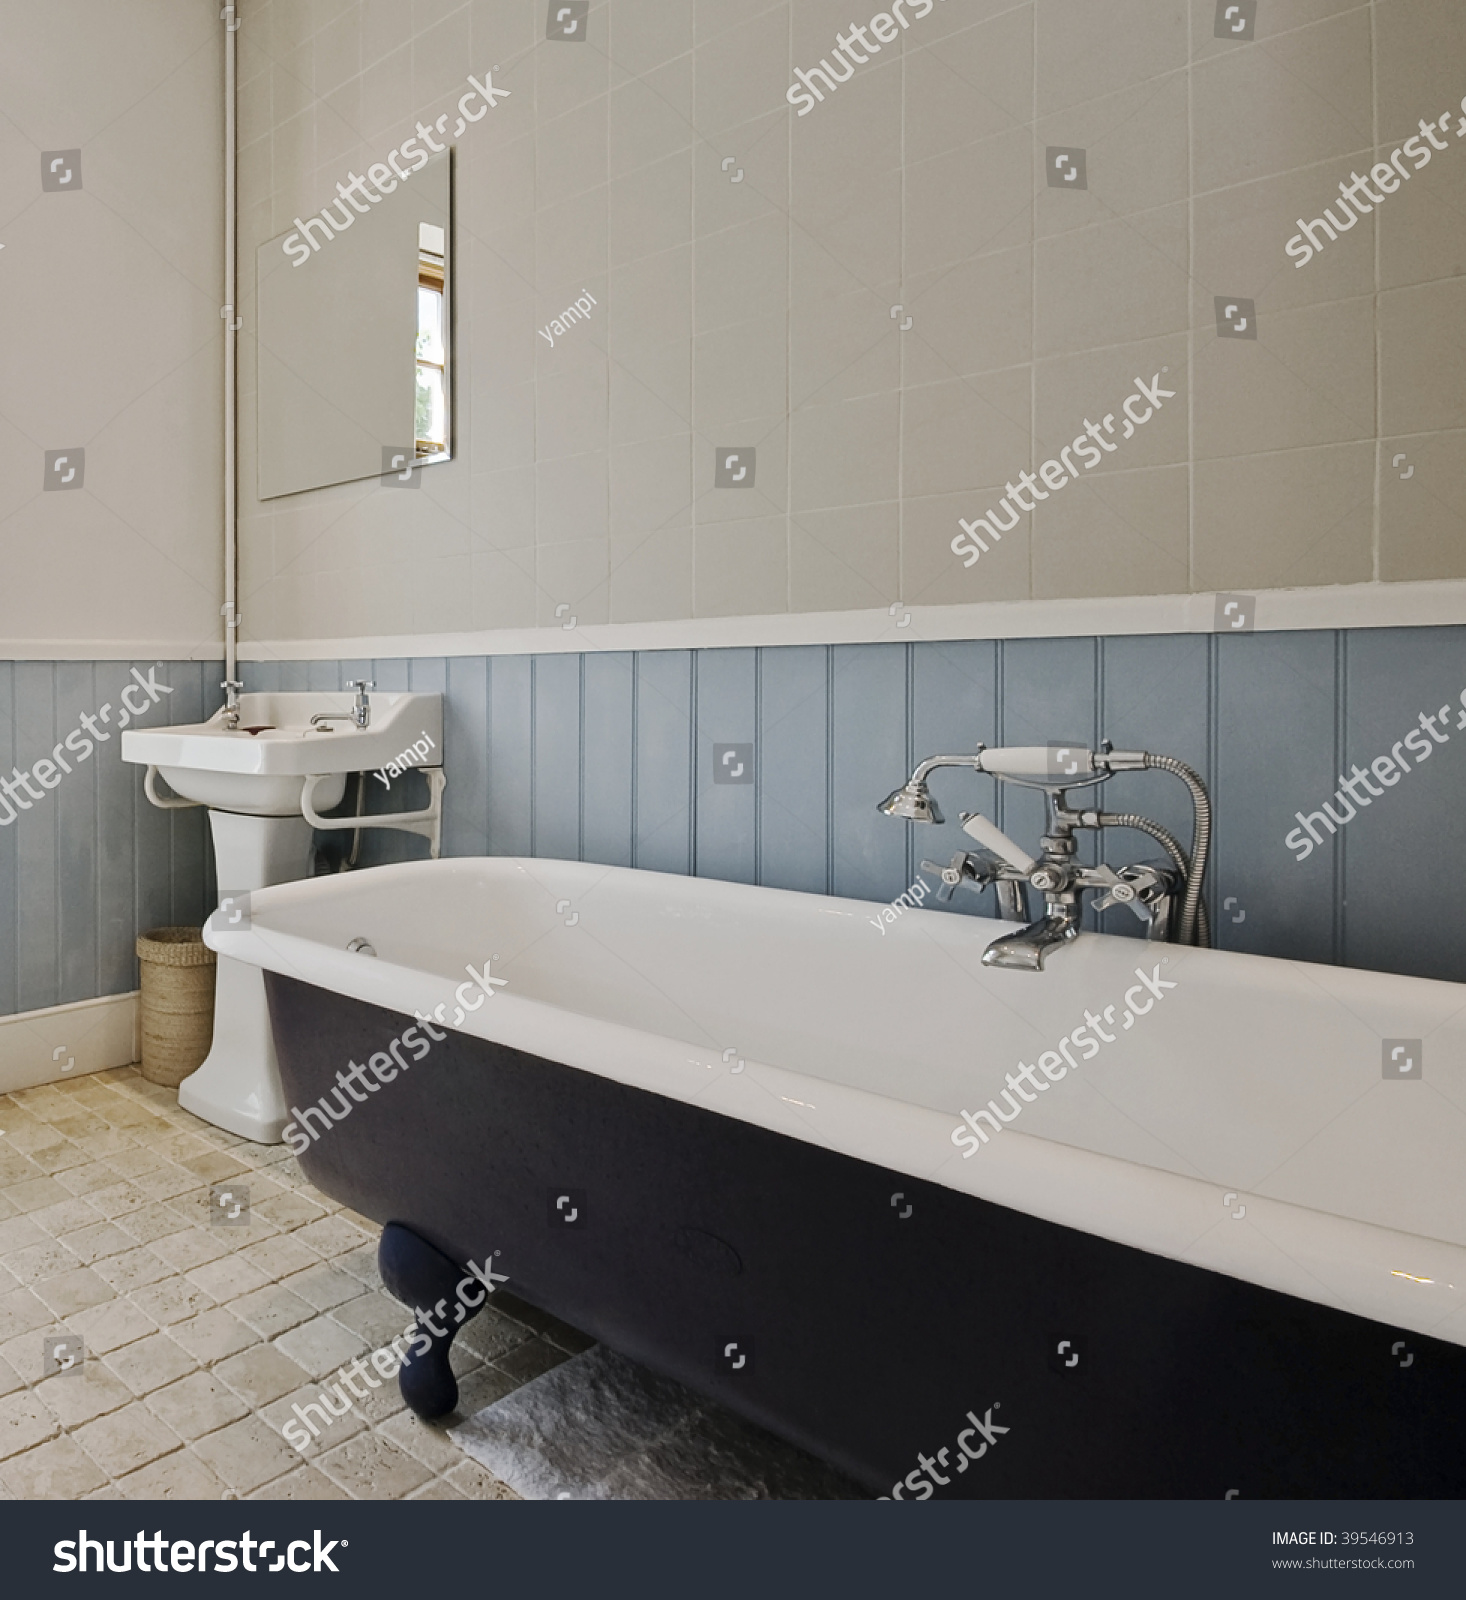 classic bathroom with glazed alloy bath tub and vintage shower bath tub and vintage shower attachment preview save to a lightbox